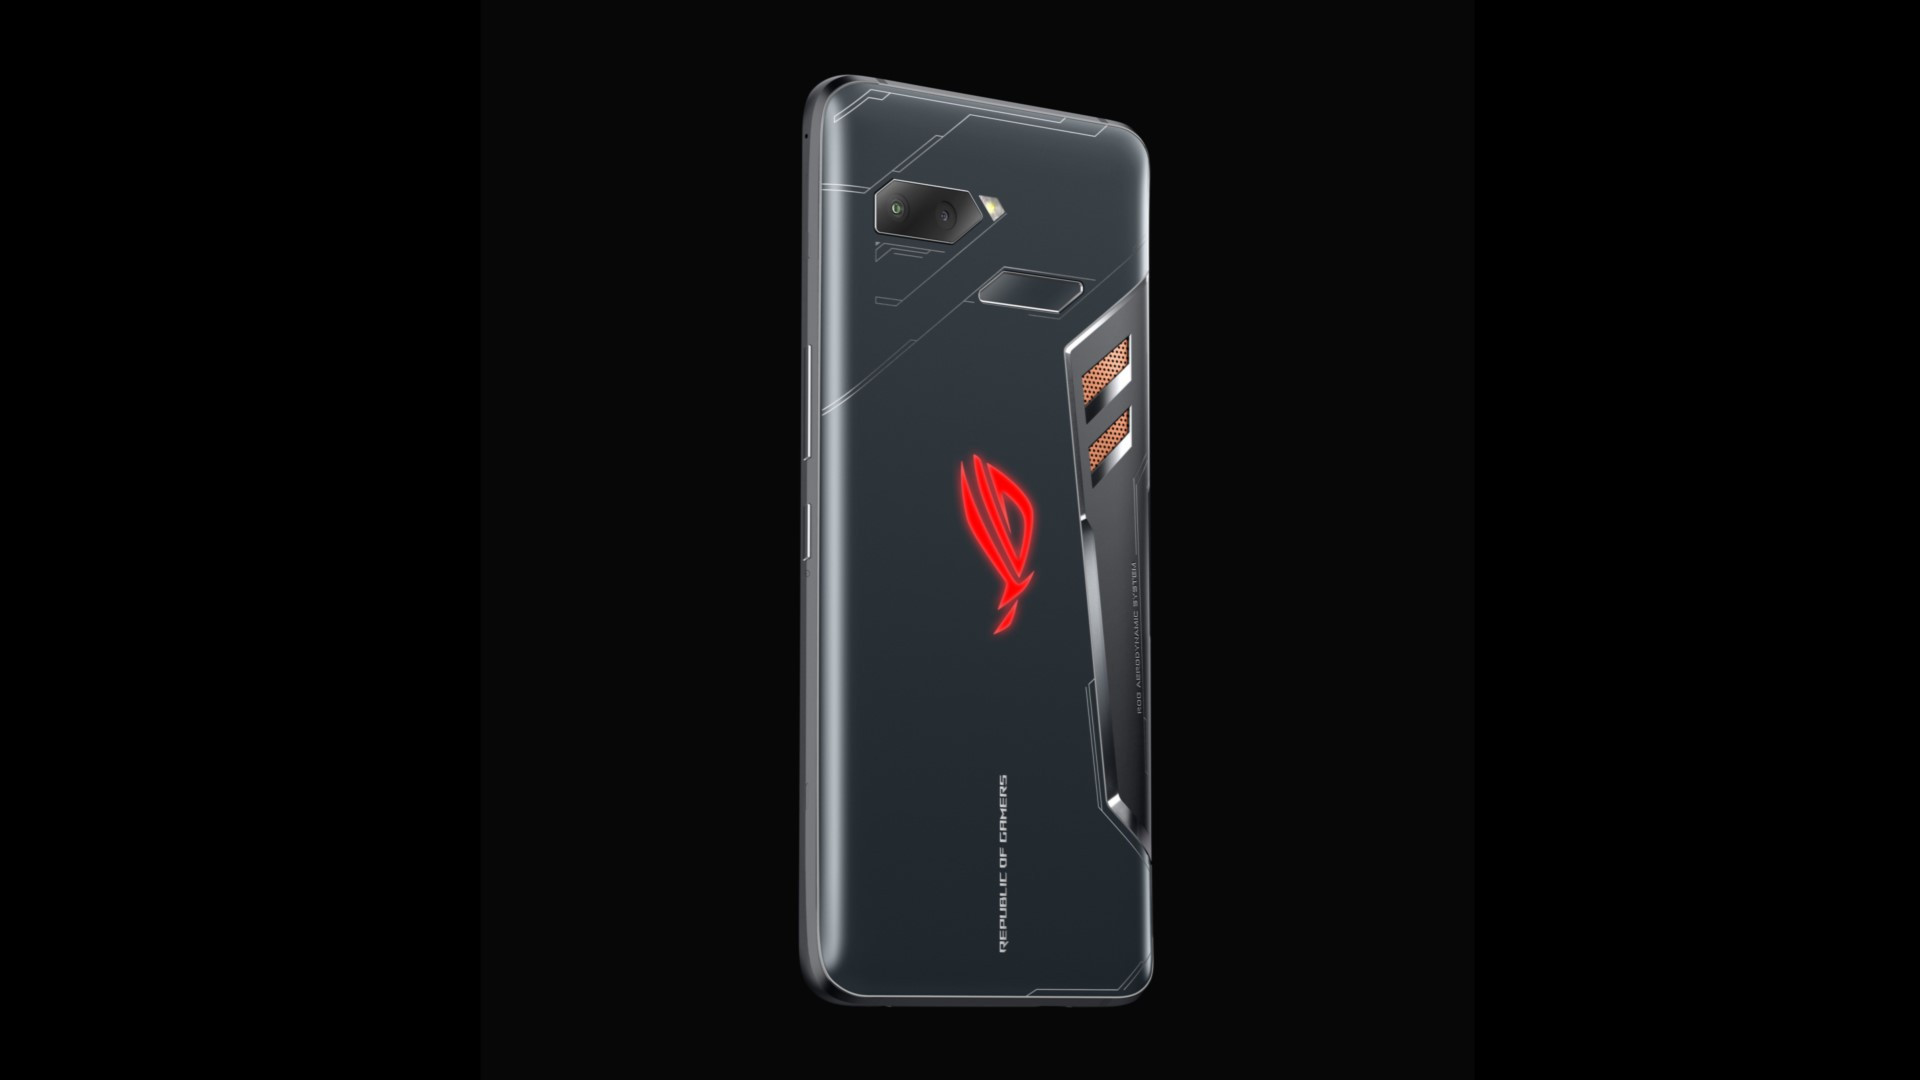 ROG-Phone-back.jpg